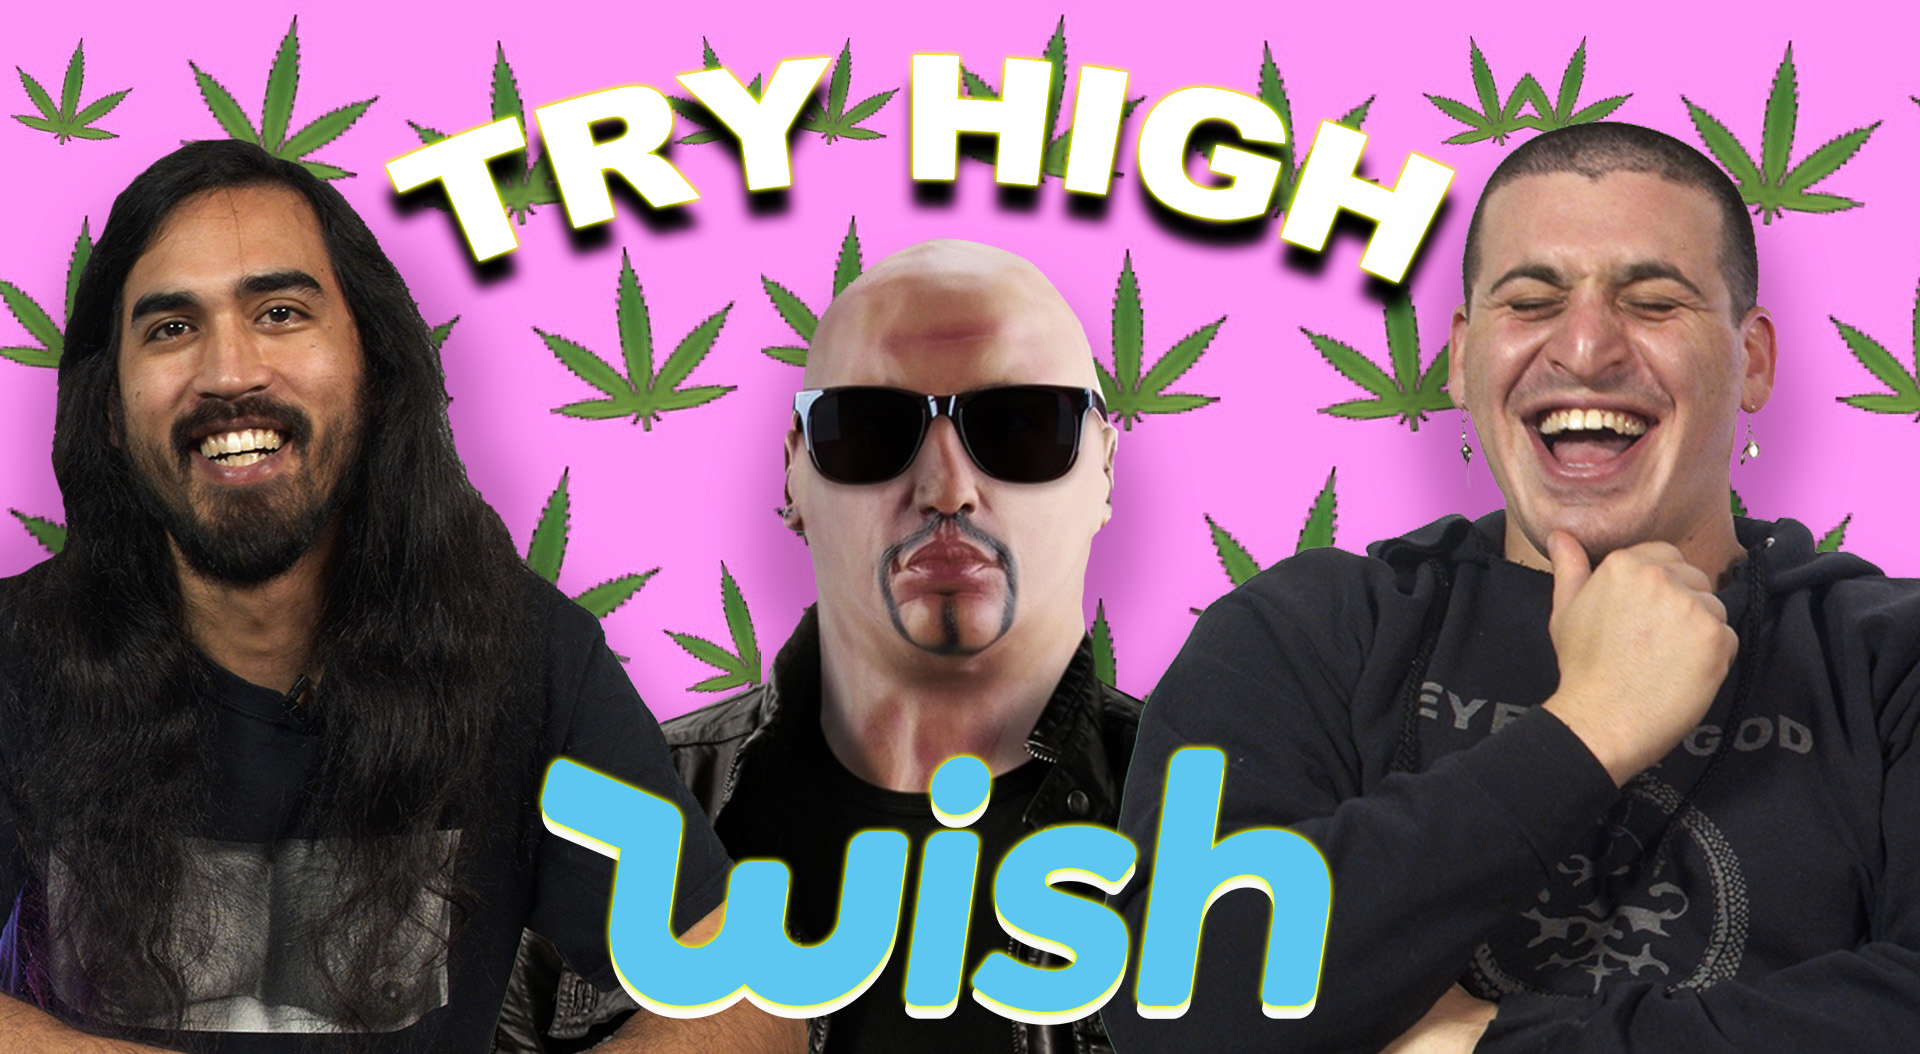 People Try Weird Wish Products High   TRY HIGH